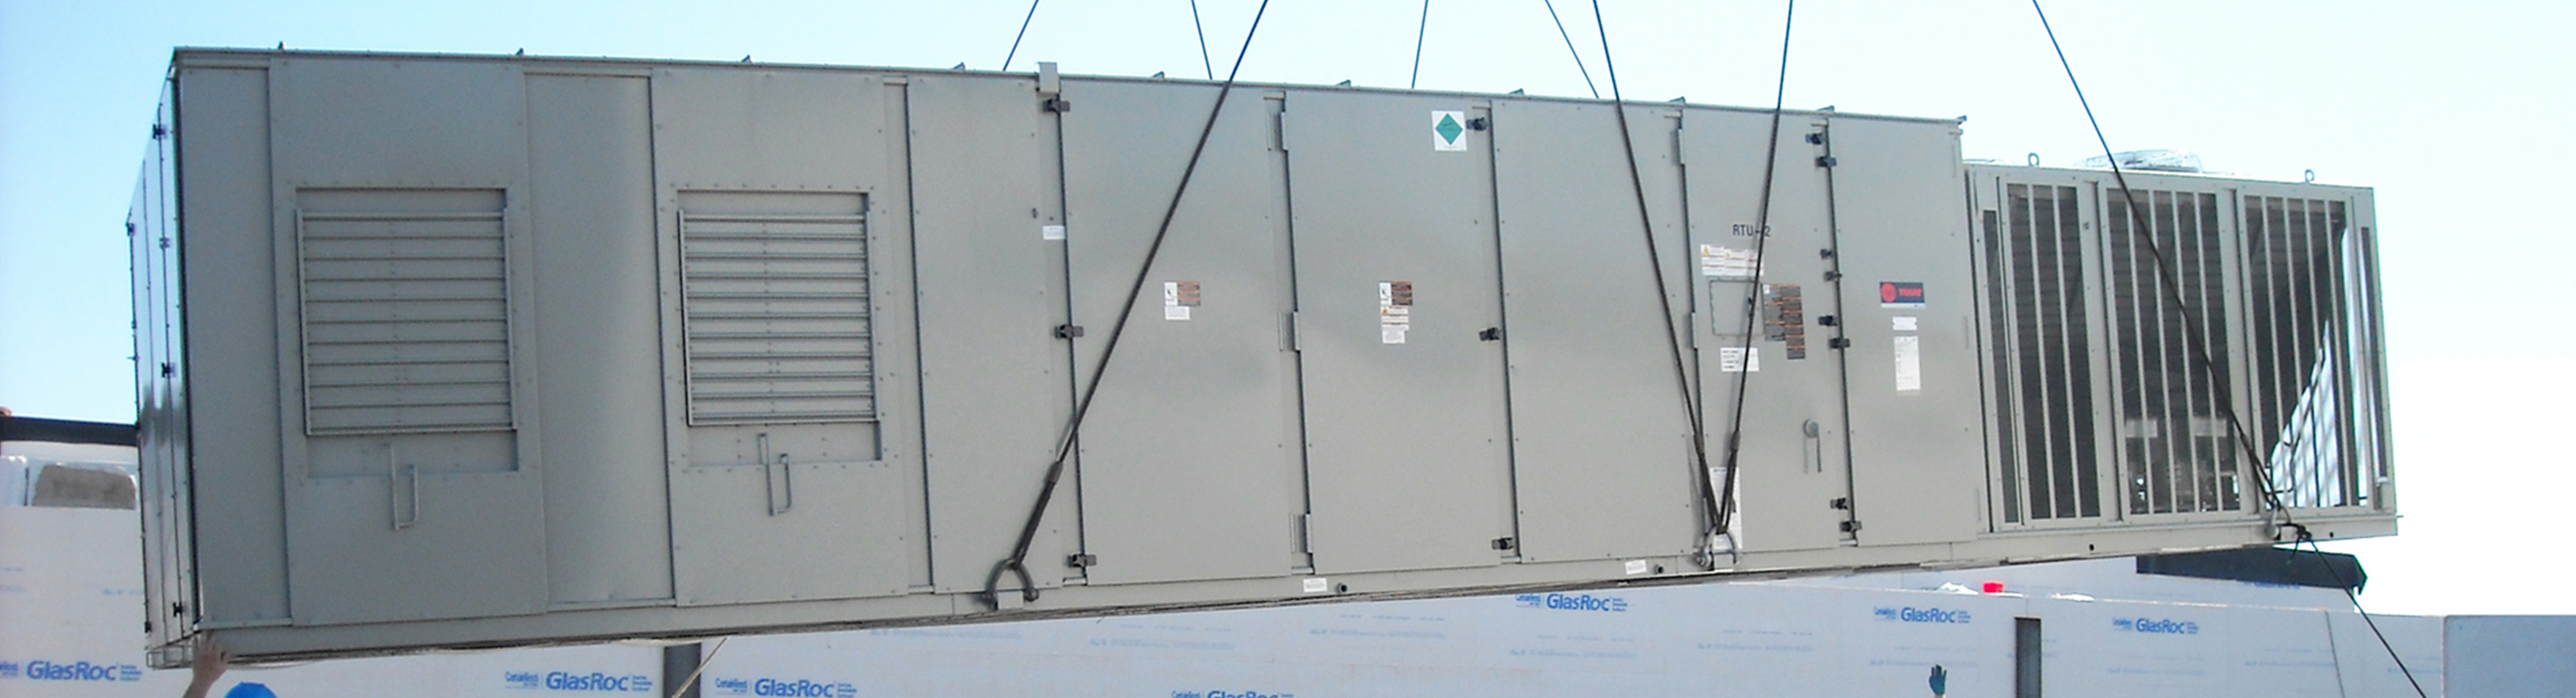 Commercial HVAC Company in NJ